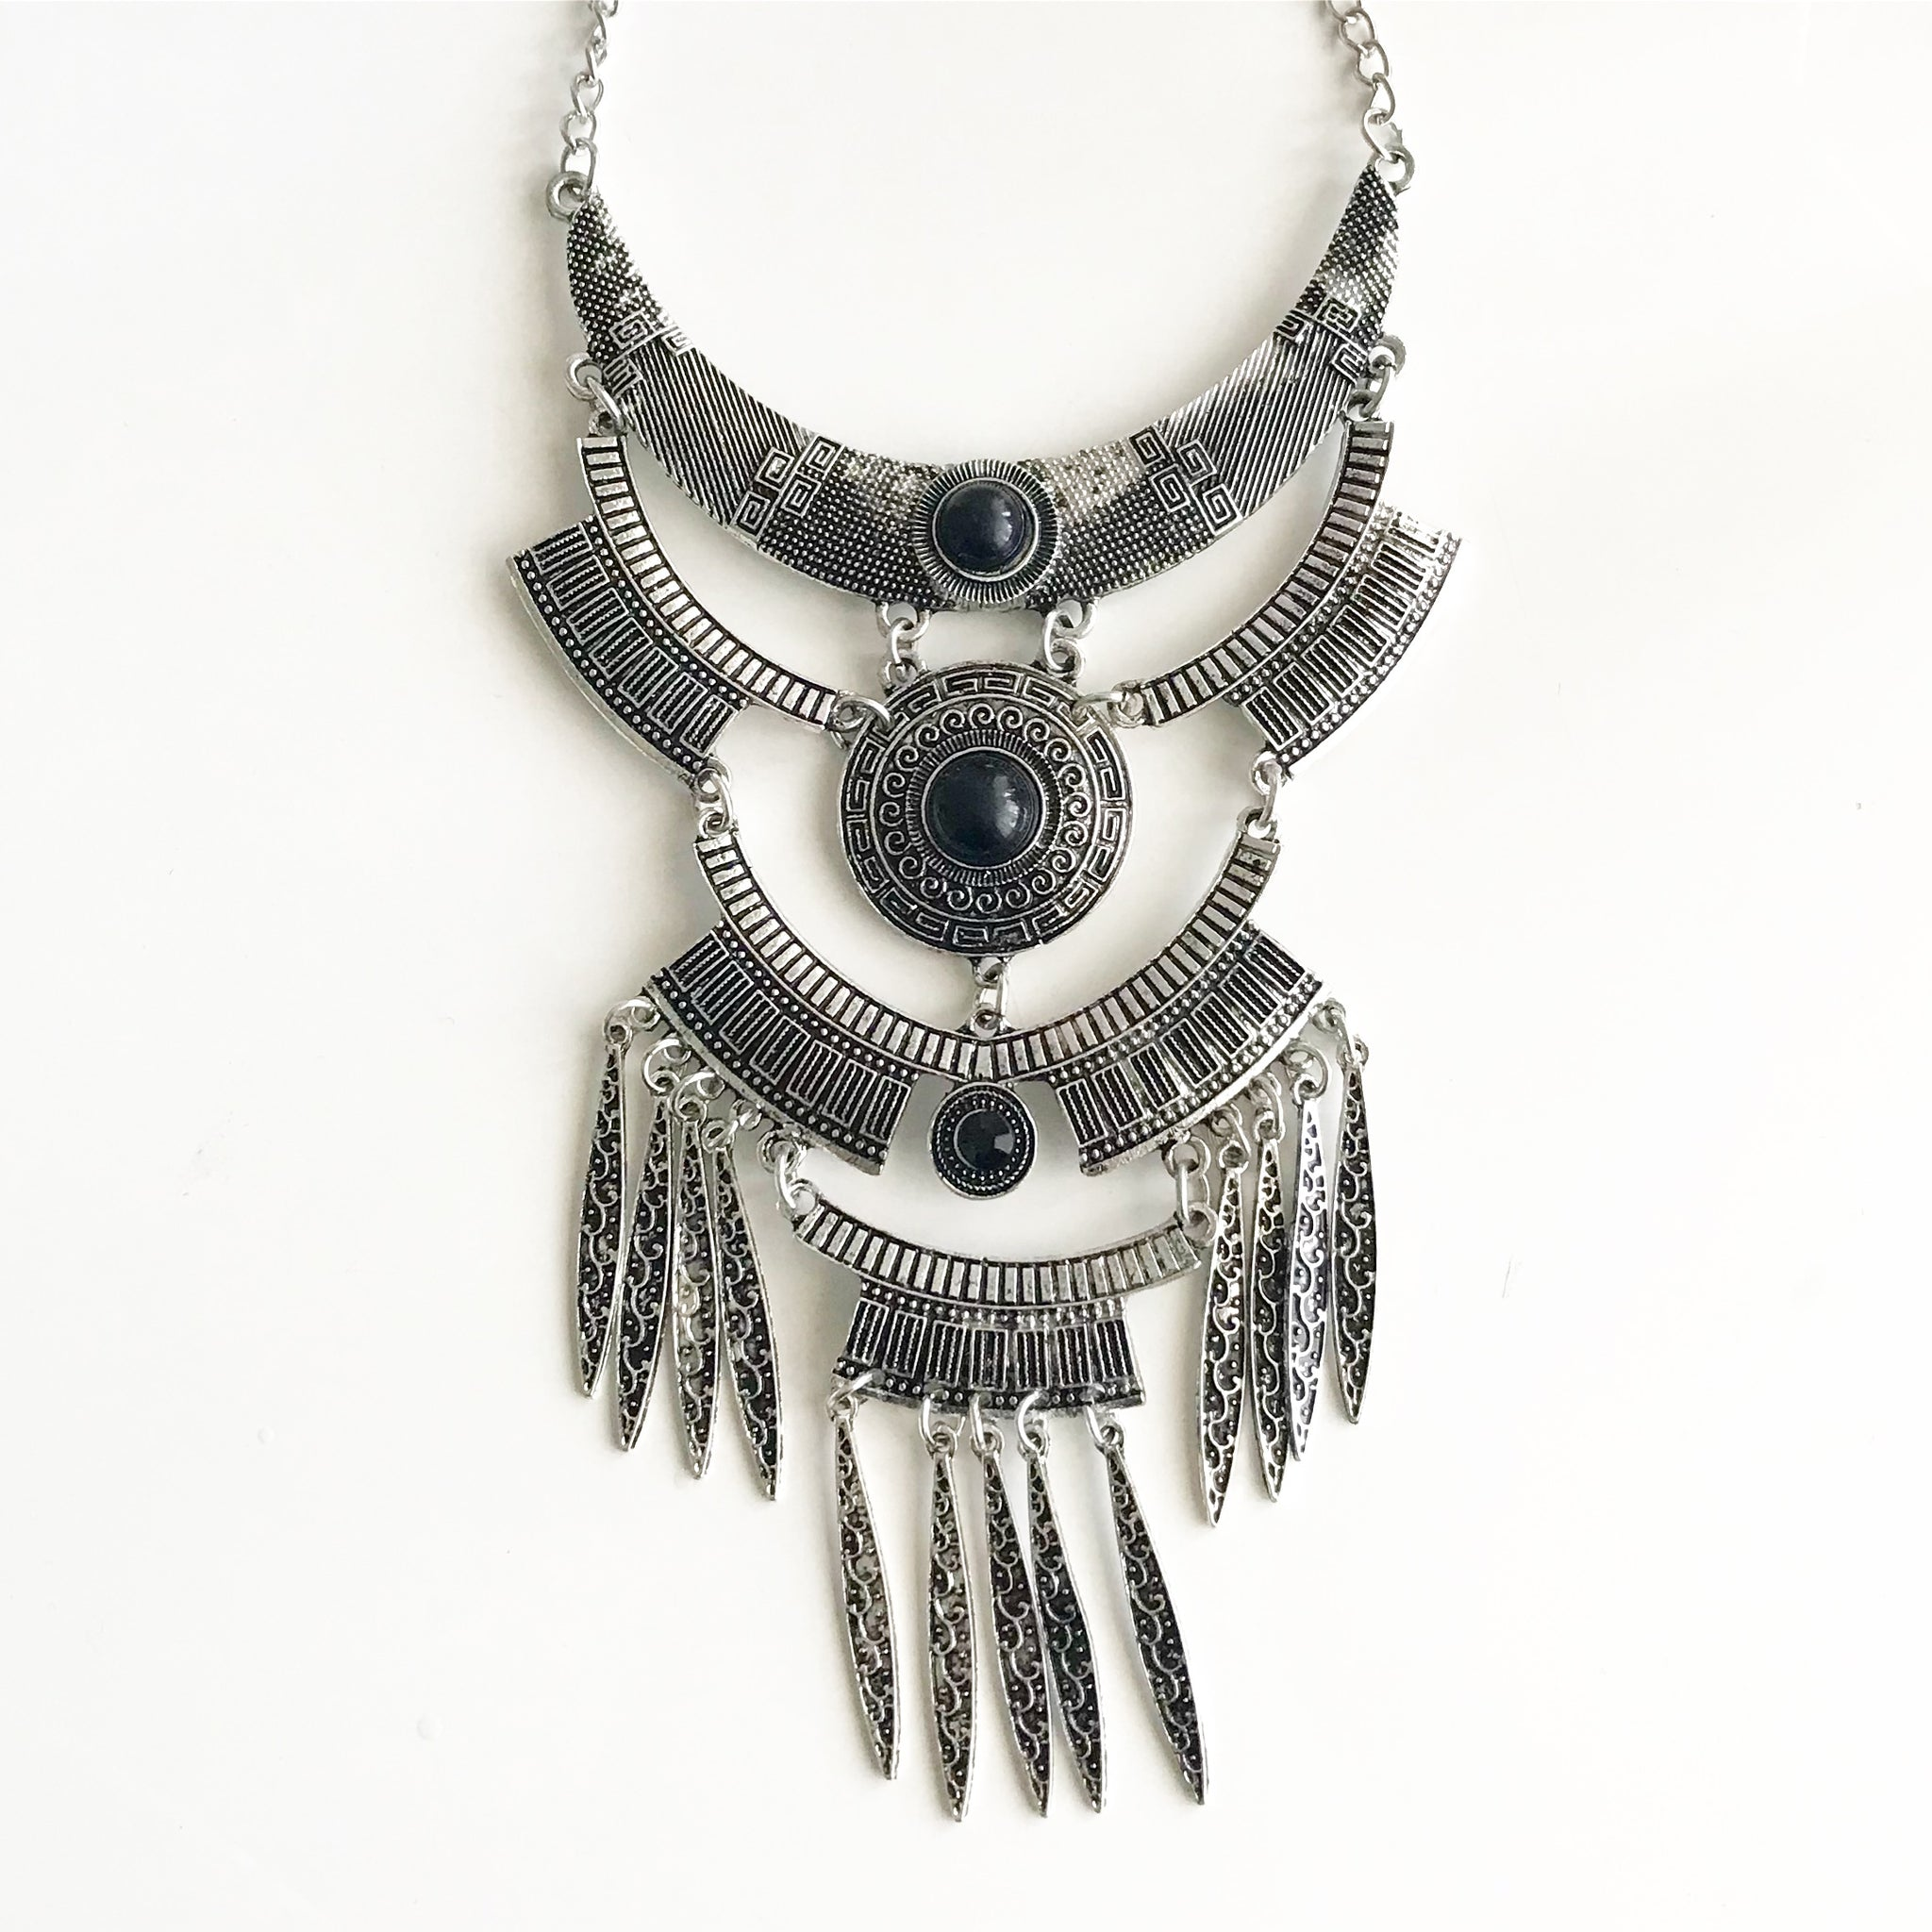 EXQUISITE BOHEMIAN NECKLACE - Flauntandfun